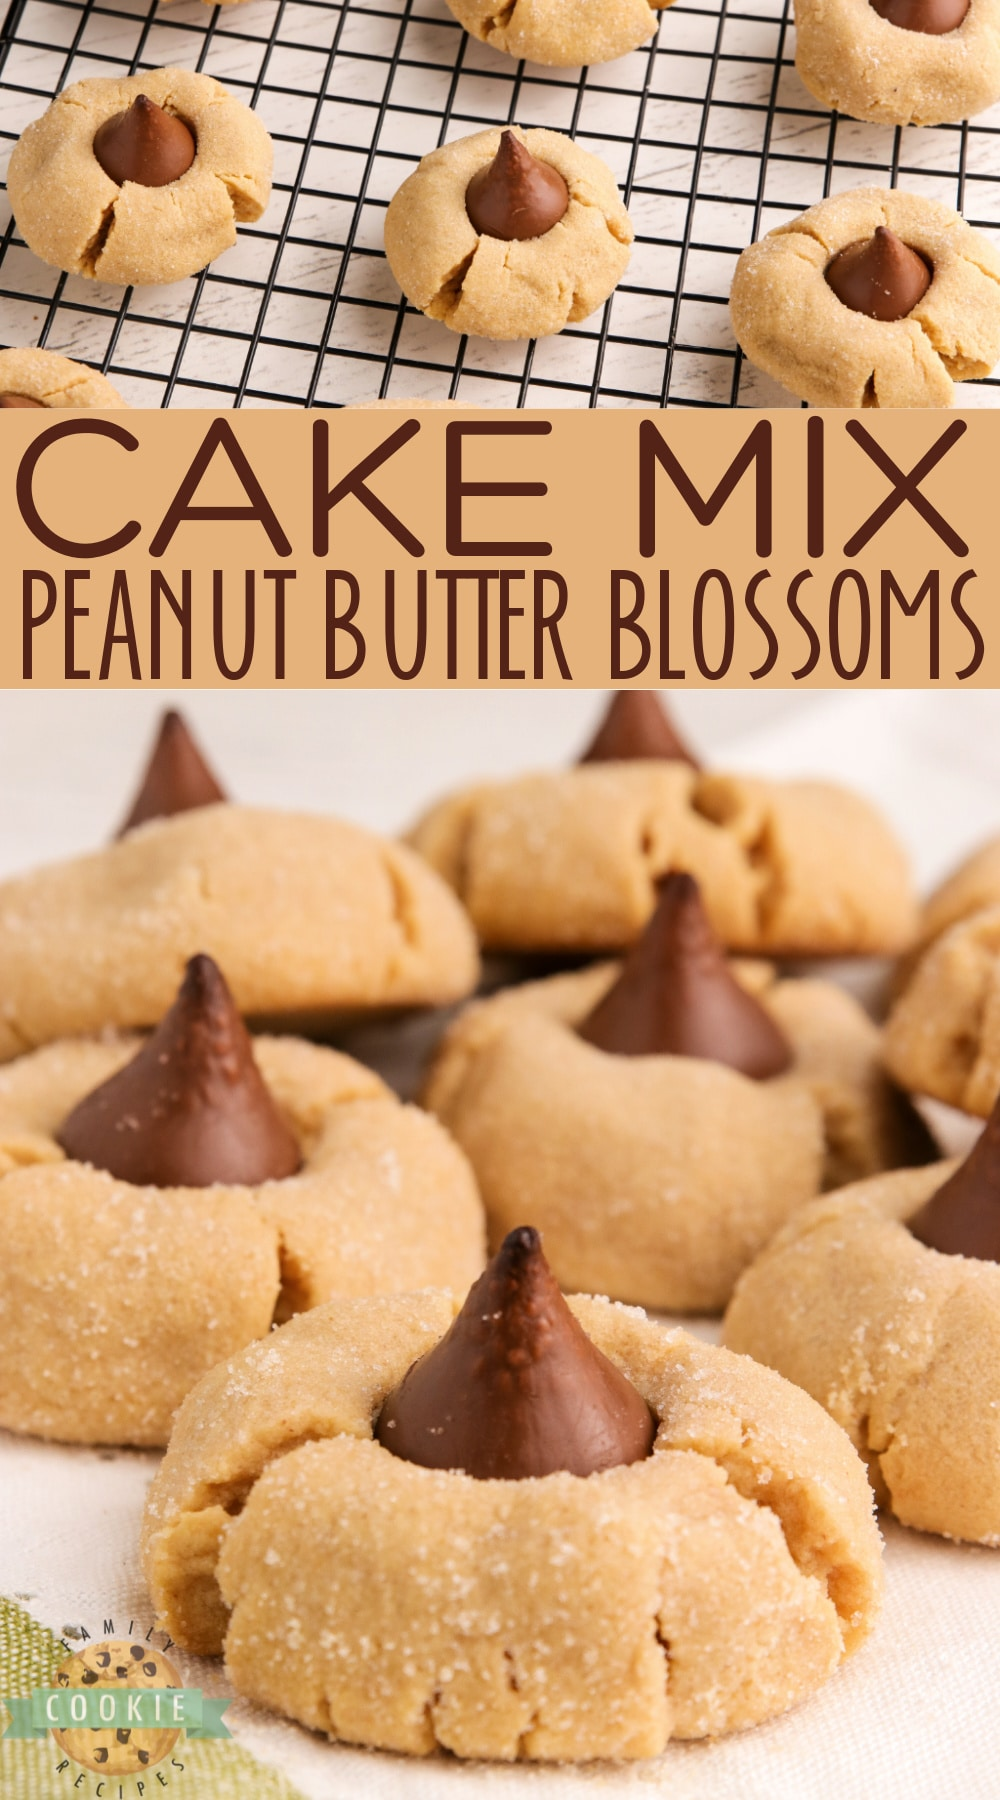 Cake Mix Peanut Butter Blossoms made with a cake mix, peanut butter and a Hershey kiss right in the middle. The easiest way to make Peanut Butter Blossom Cookies! via @familycookierecipes